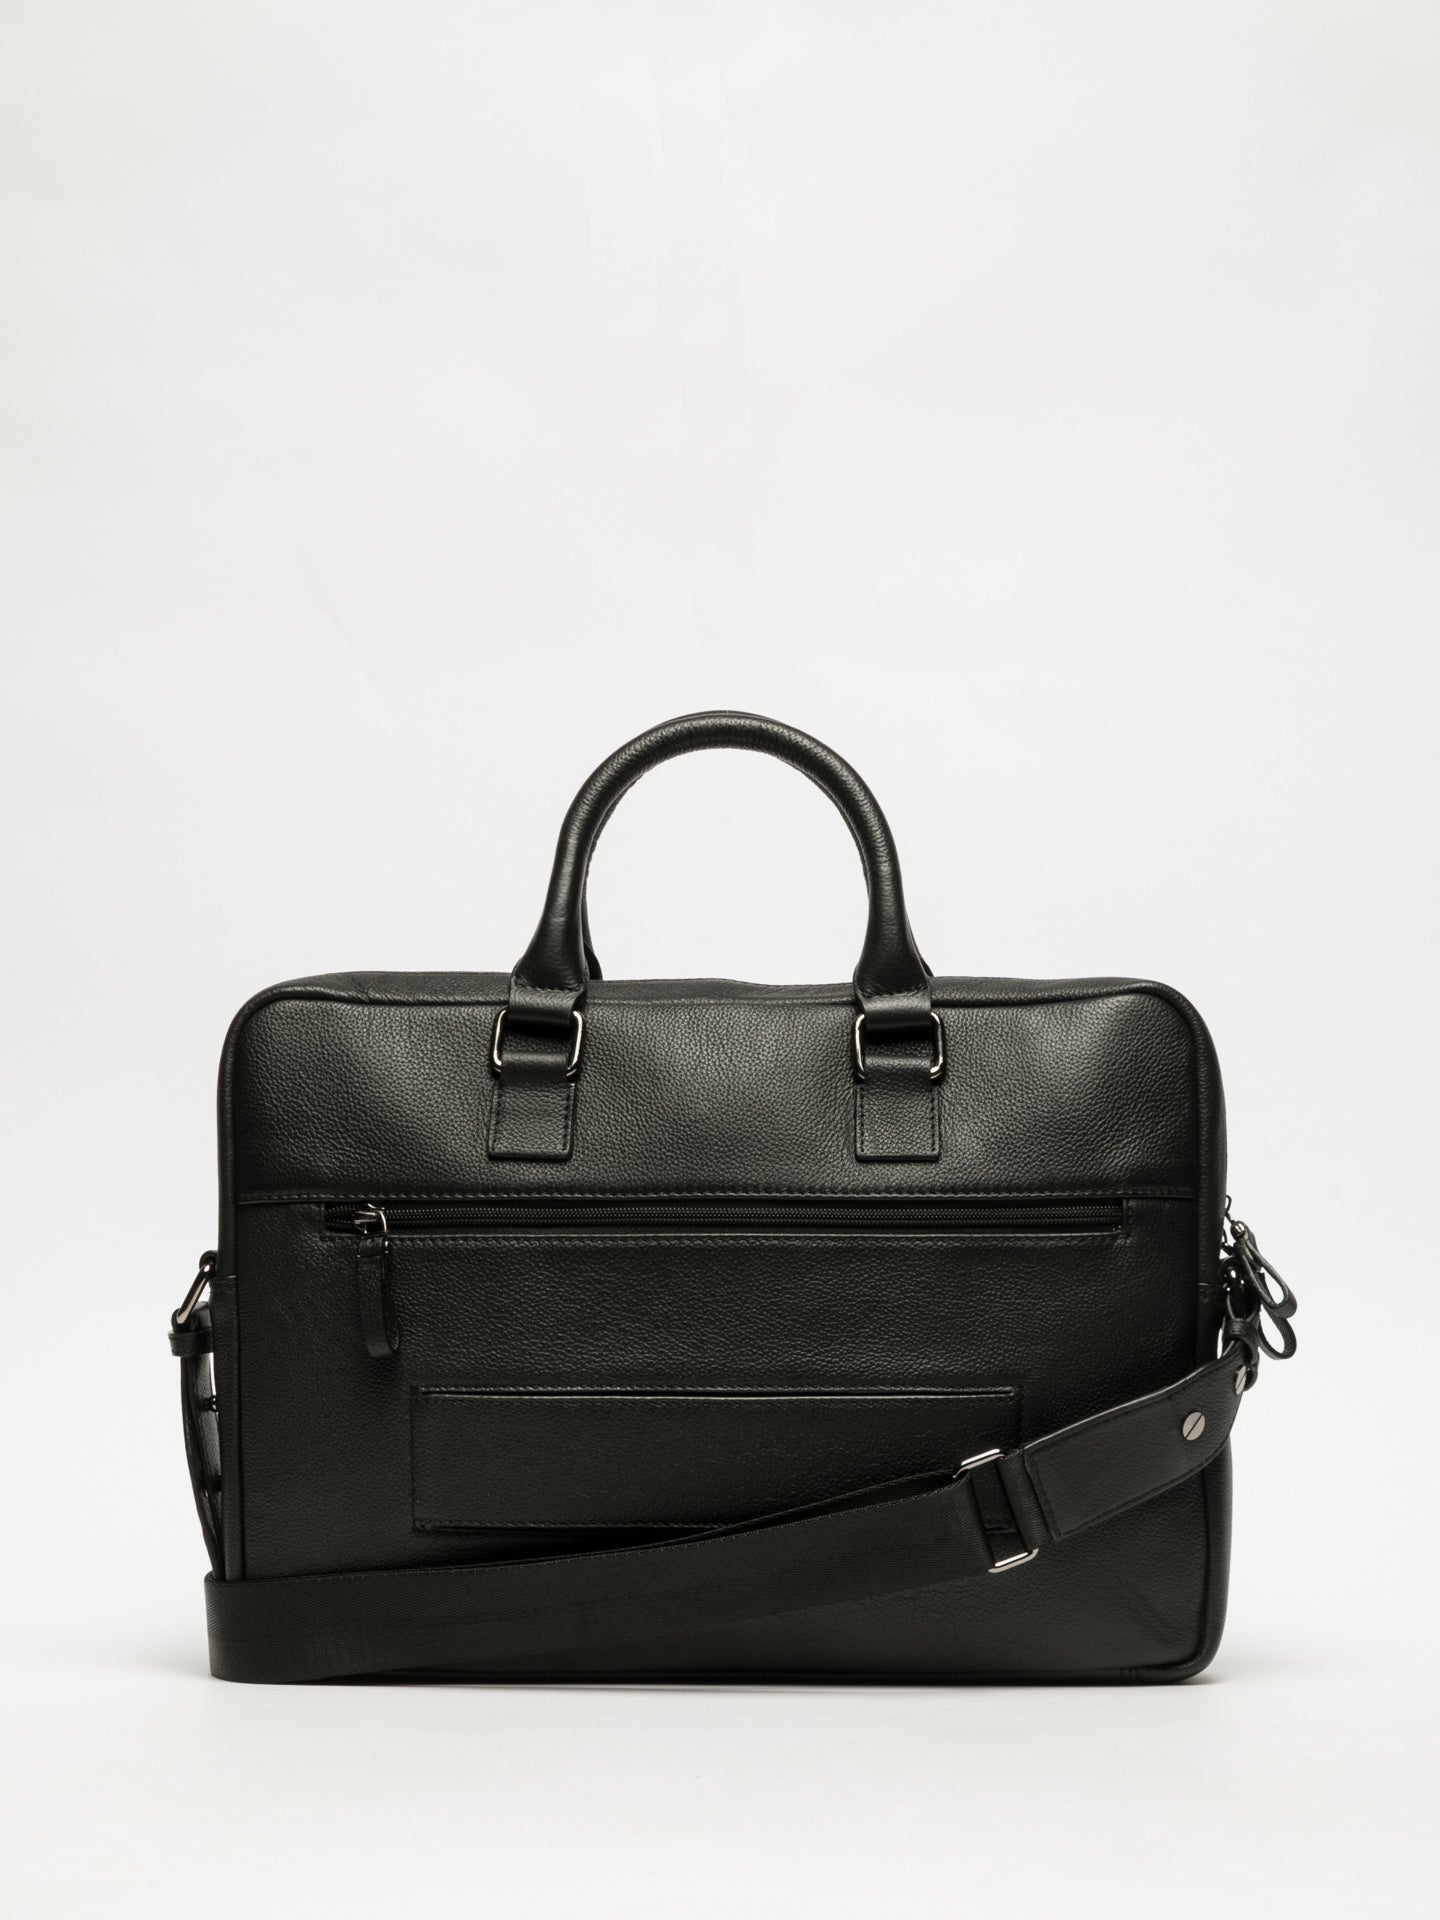 MARTA PONTI Black Laptop Bag